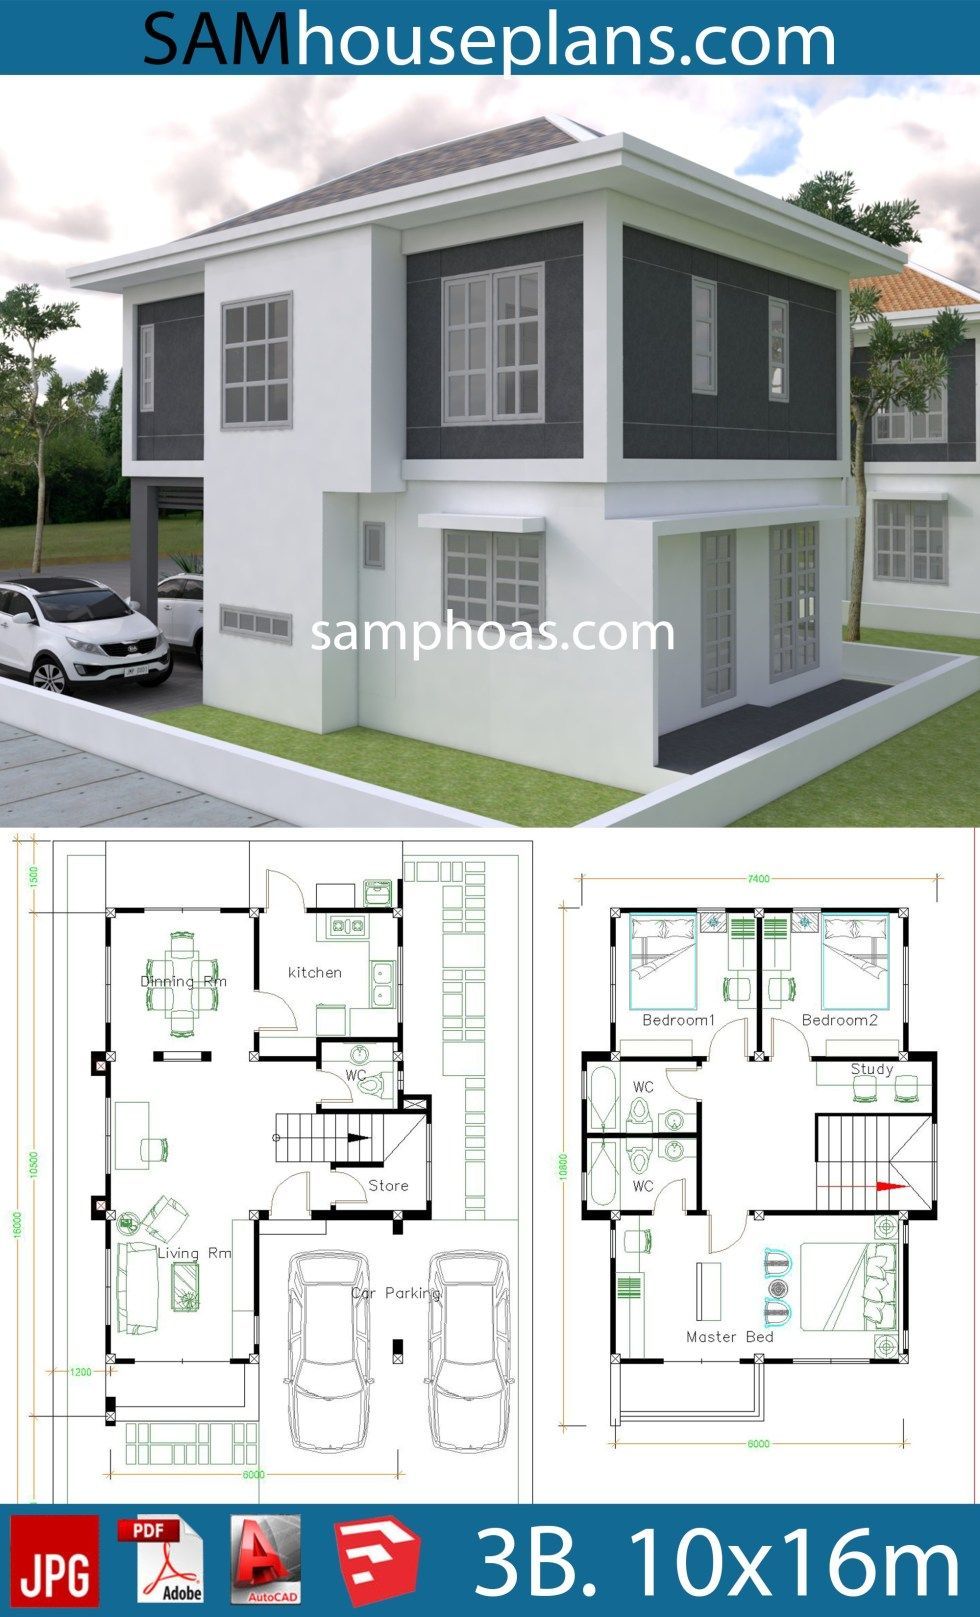 House Plans 10x16m With 3 Bedrooms Sam House Plans Architectural Design House Plans House Plans House Layout Plans